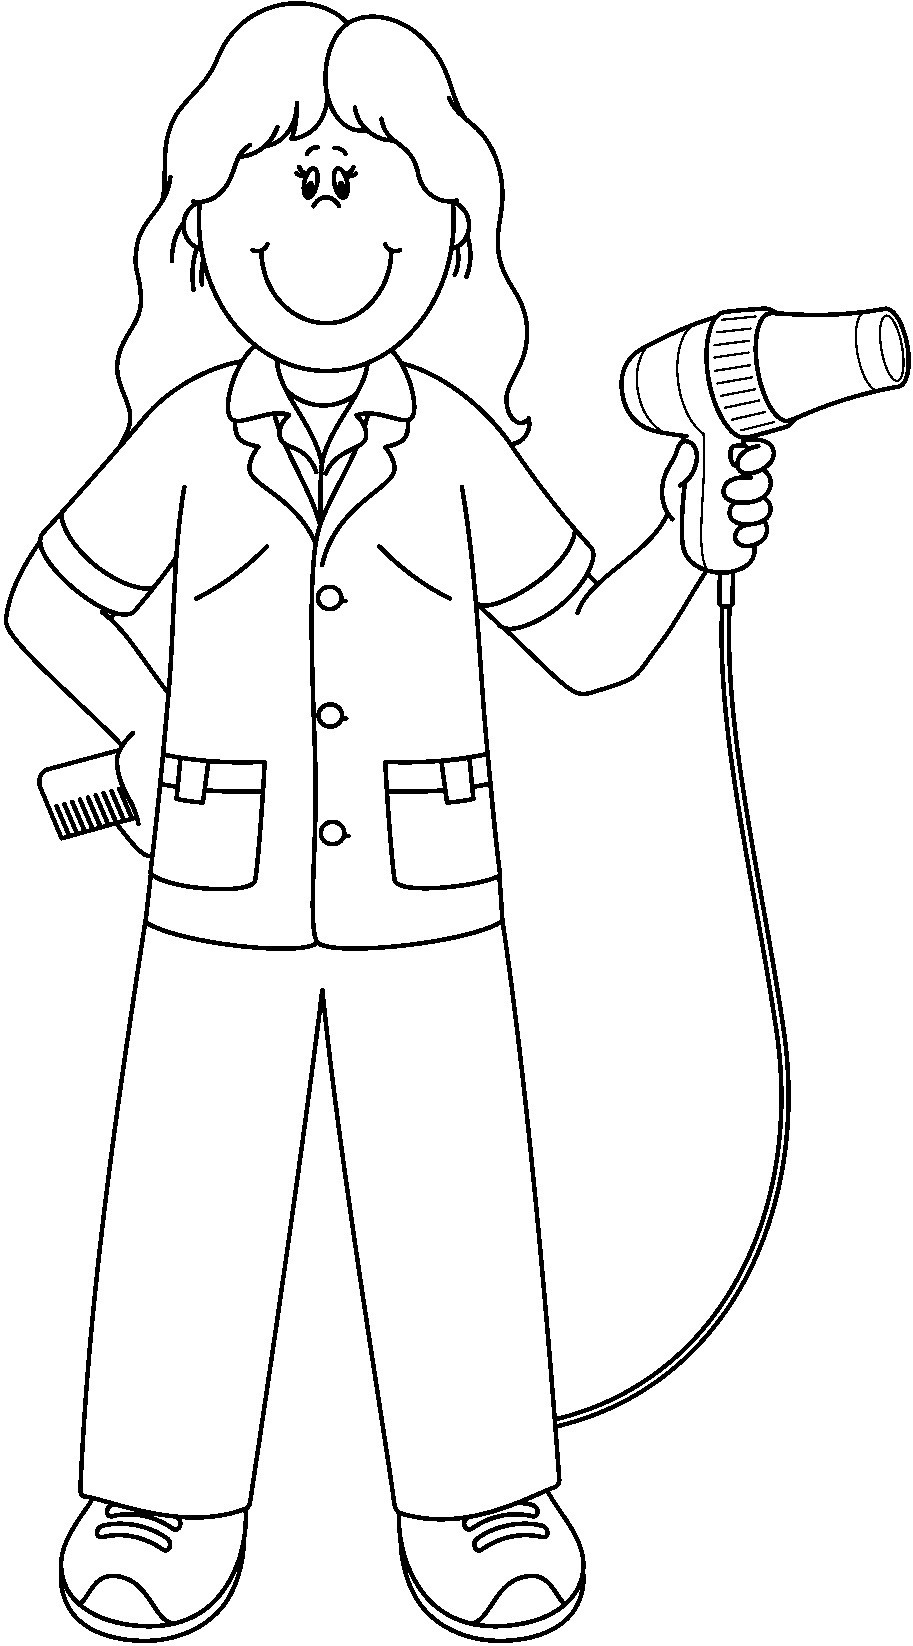 hight resolution of barber clipart community helper coloring pages jennymorgan me